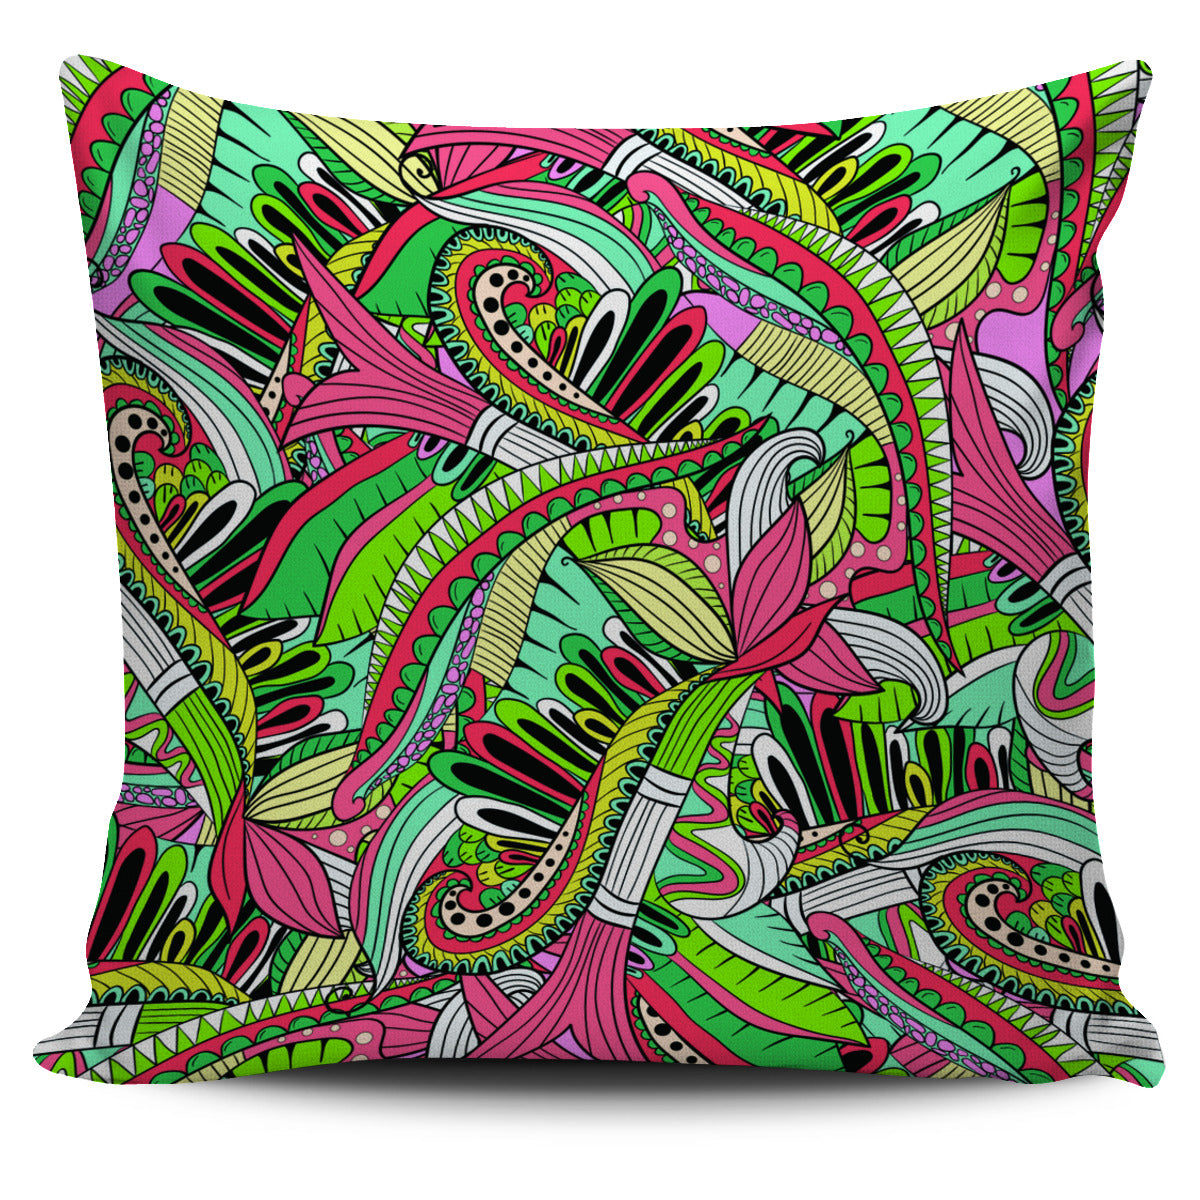 Funky Patterns in Greens - Single Sided Pillow Cover